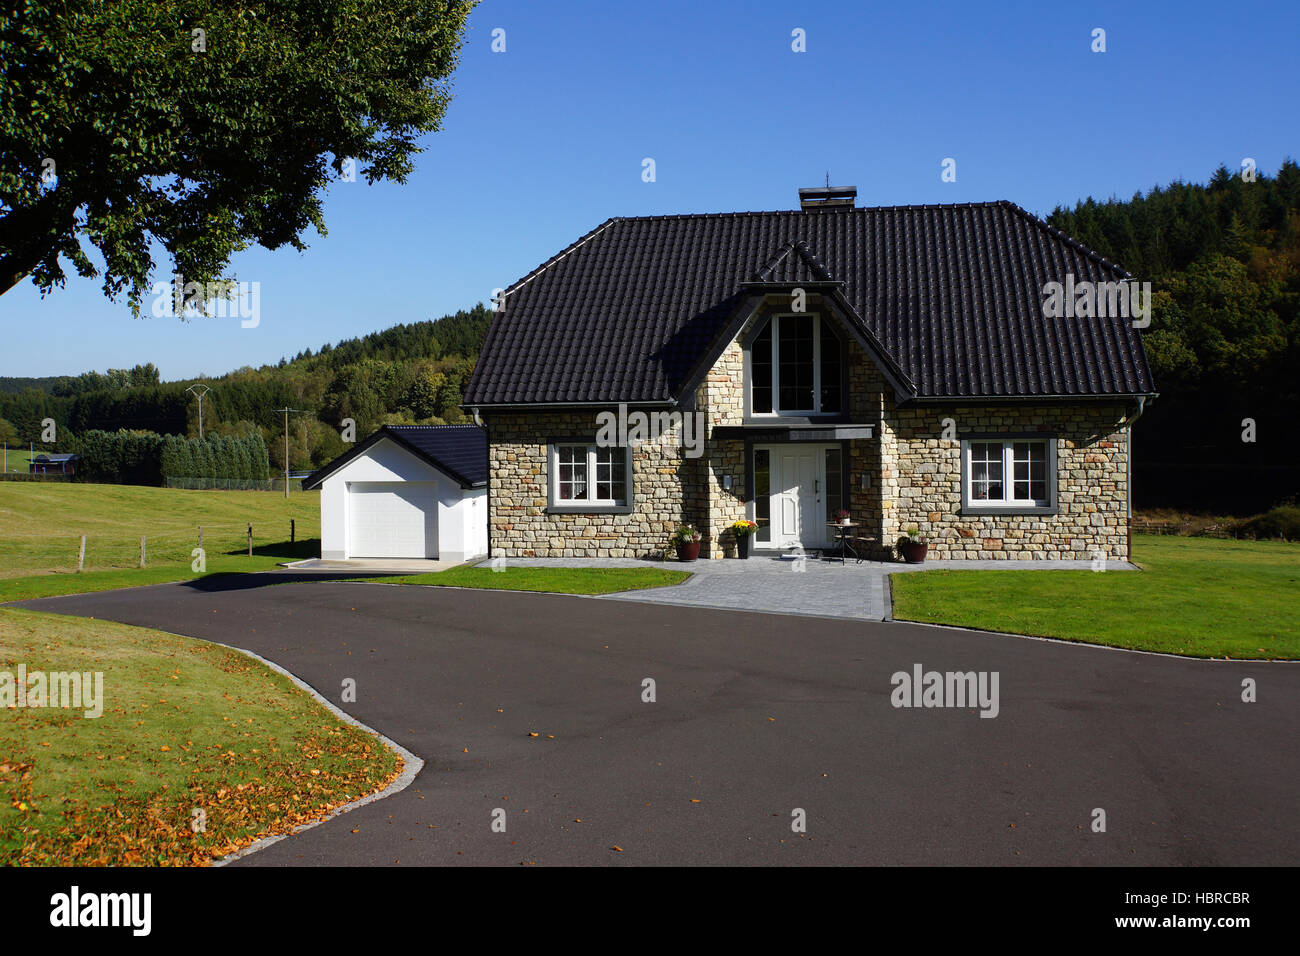 neat one family House - Stock Image